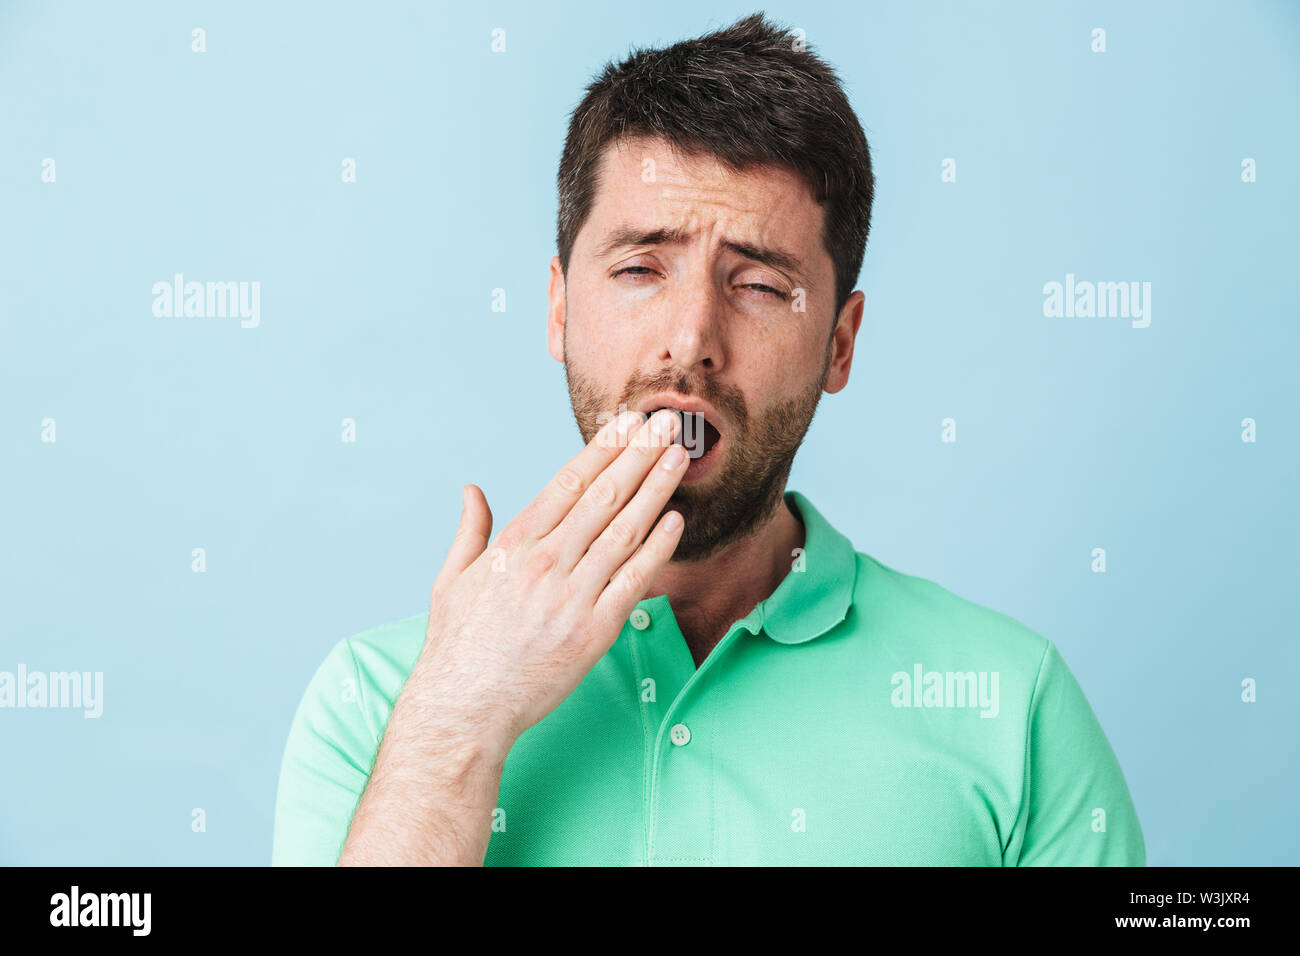 Image of a tired young handsome bearded man posing isolated over blue wall background yawning. - Stock Image